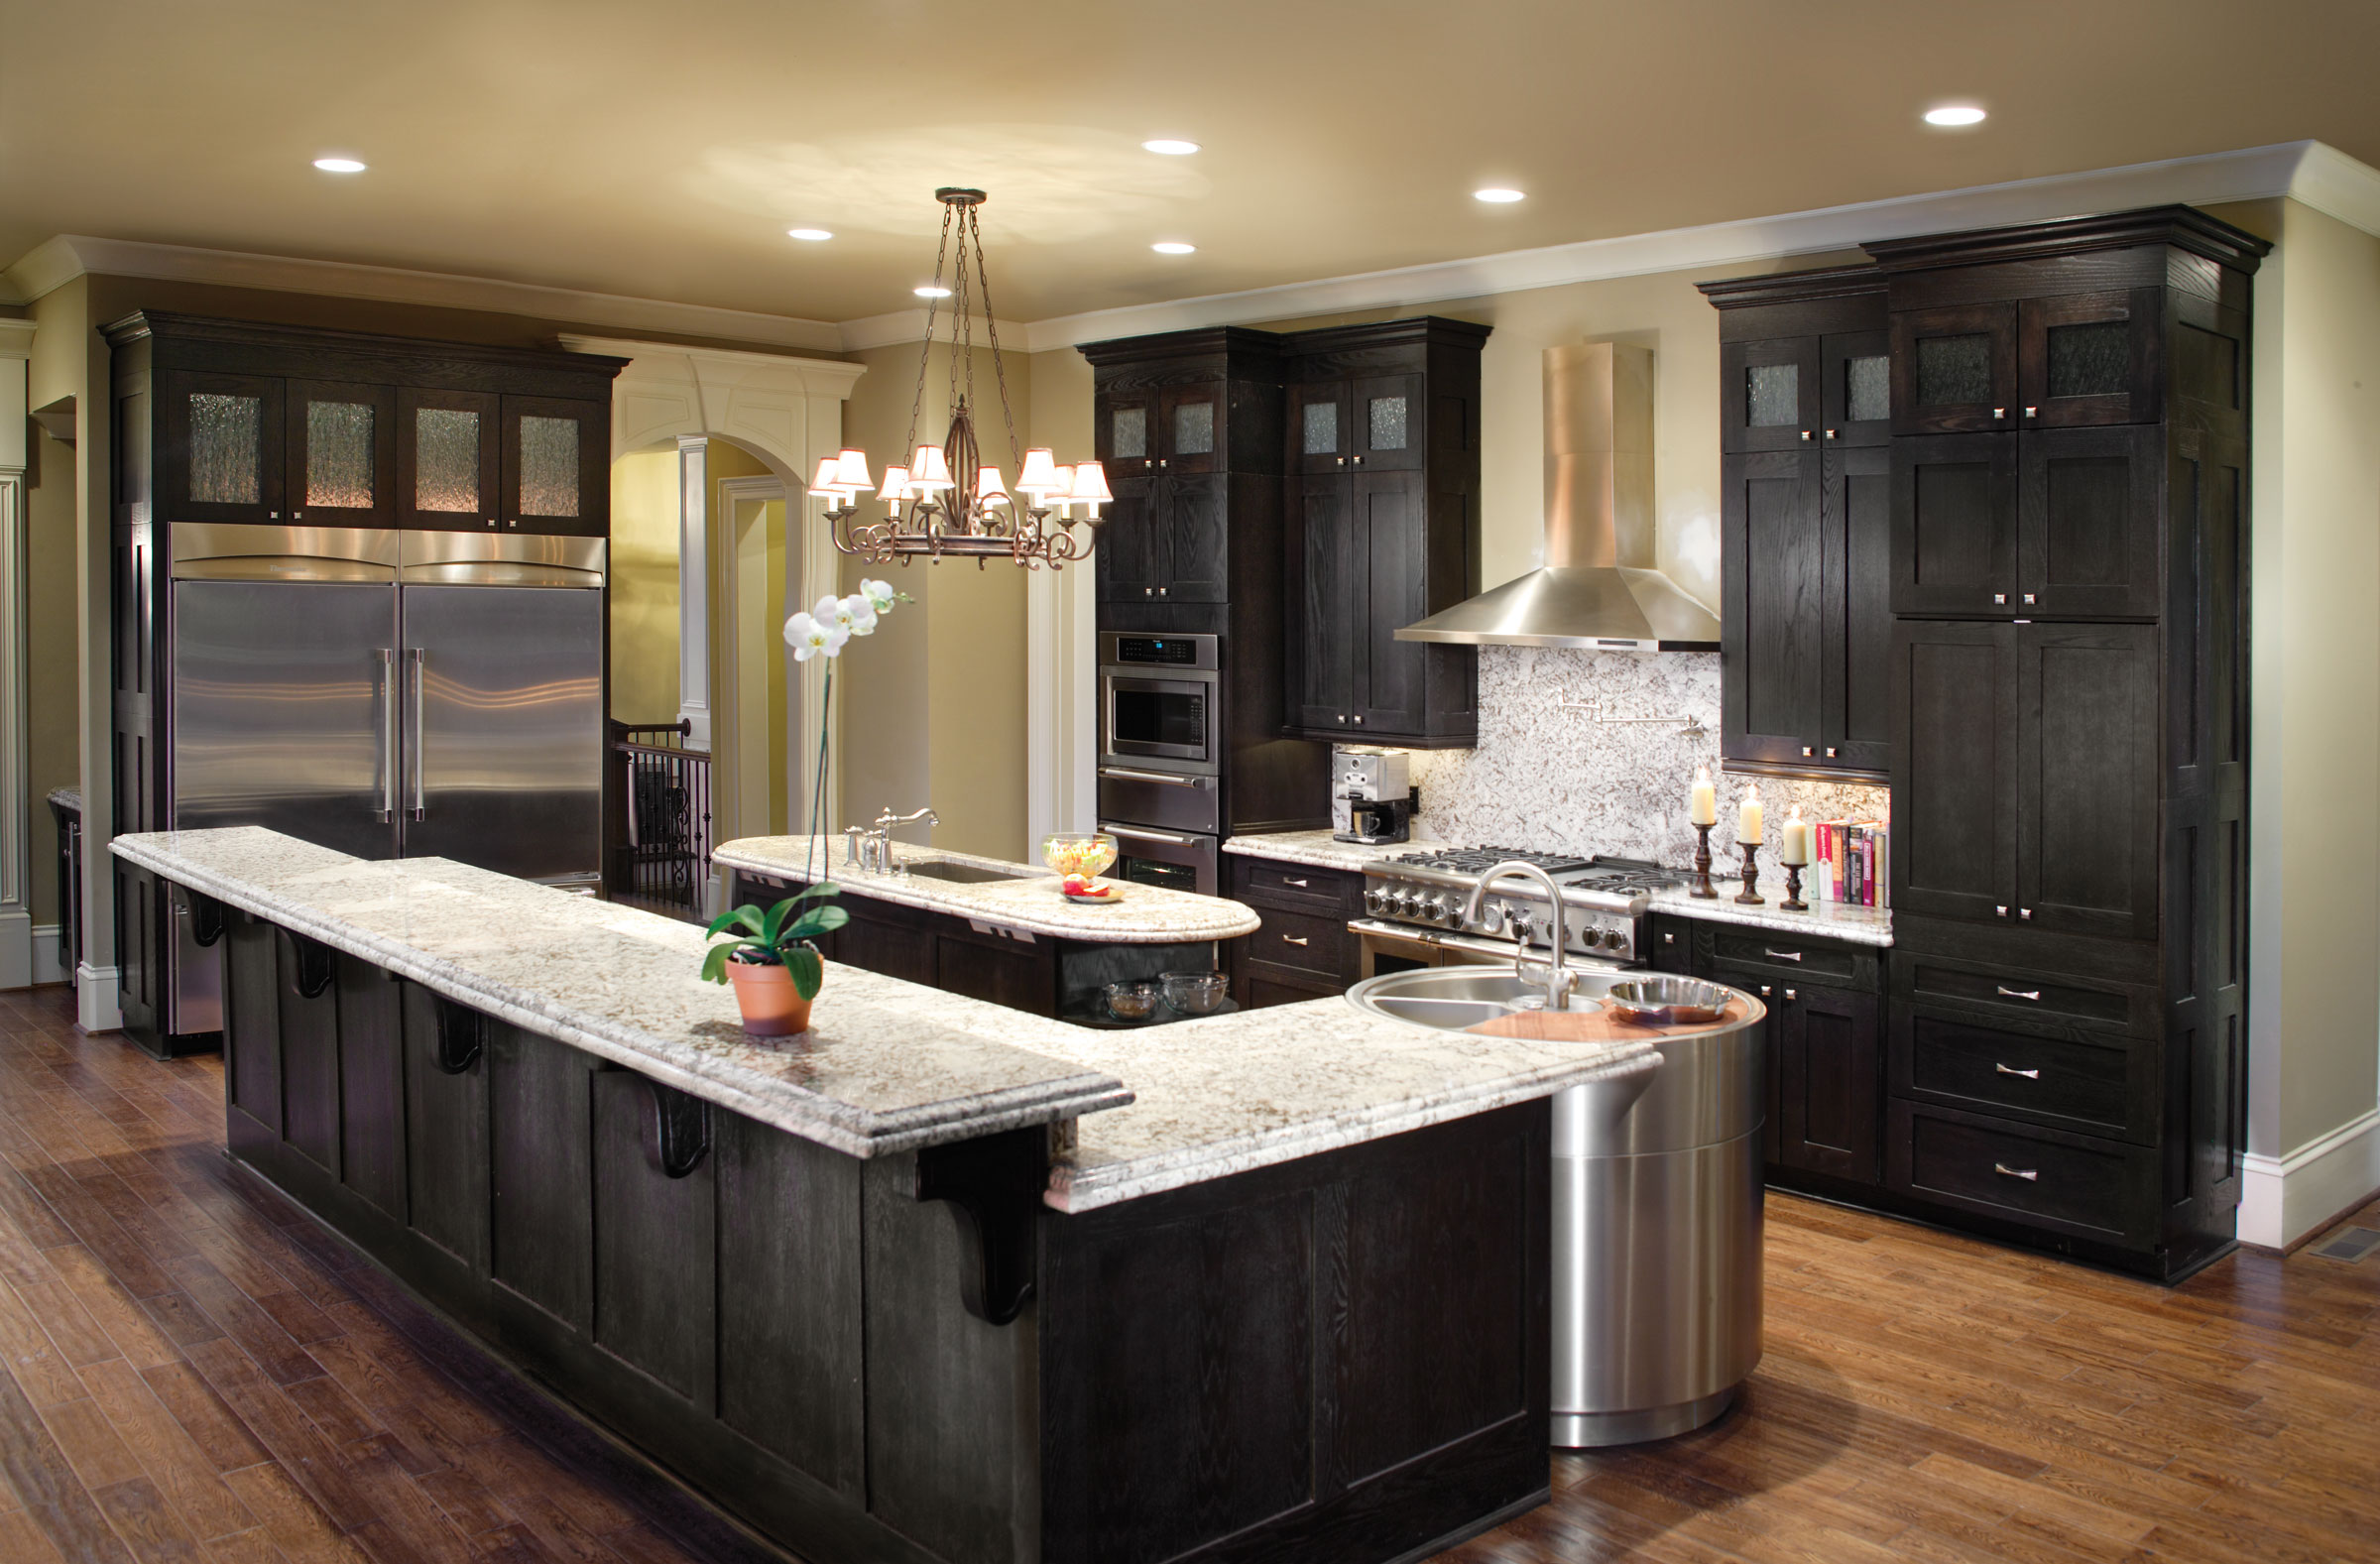 Custom bathroom kitchen cabinets phoenix cabinets by for Custom kitchen designer